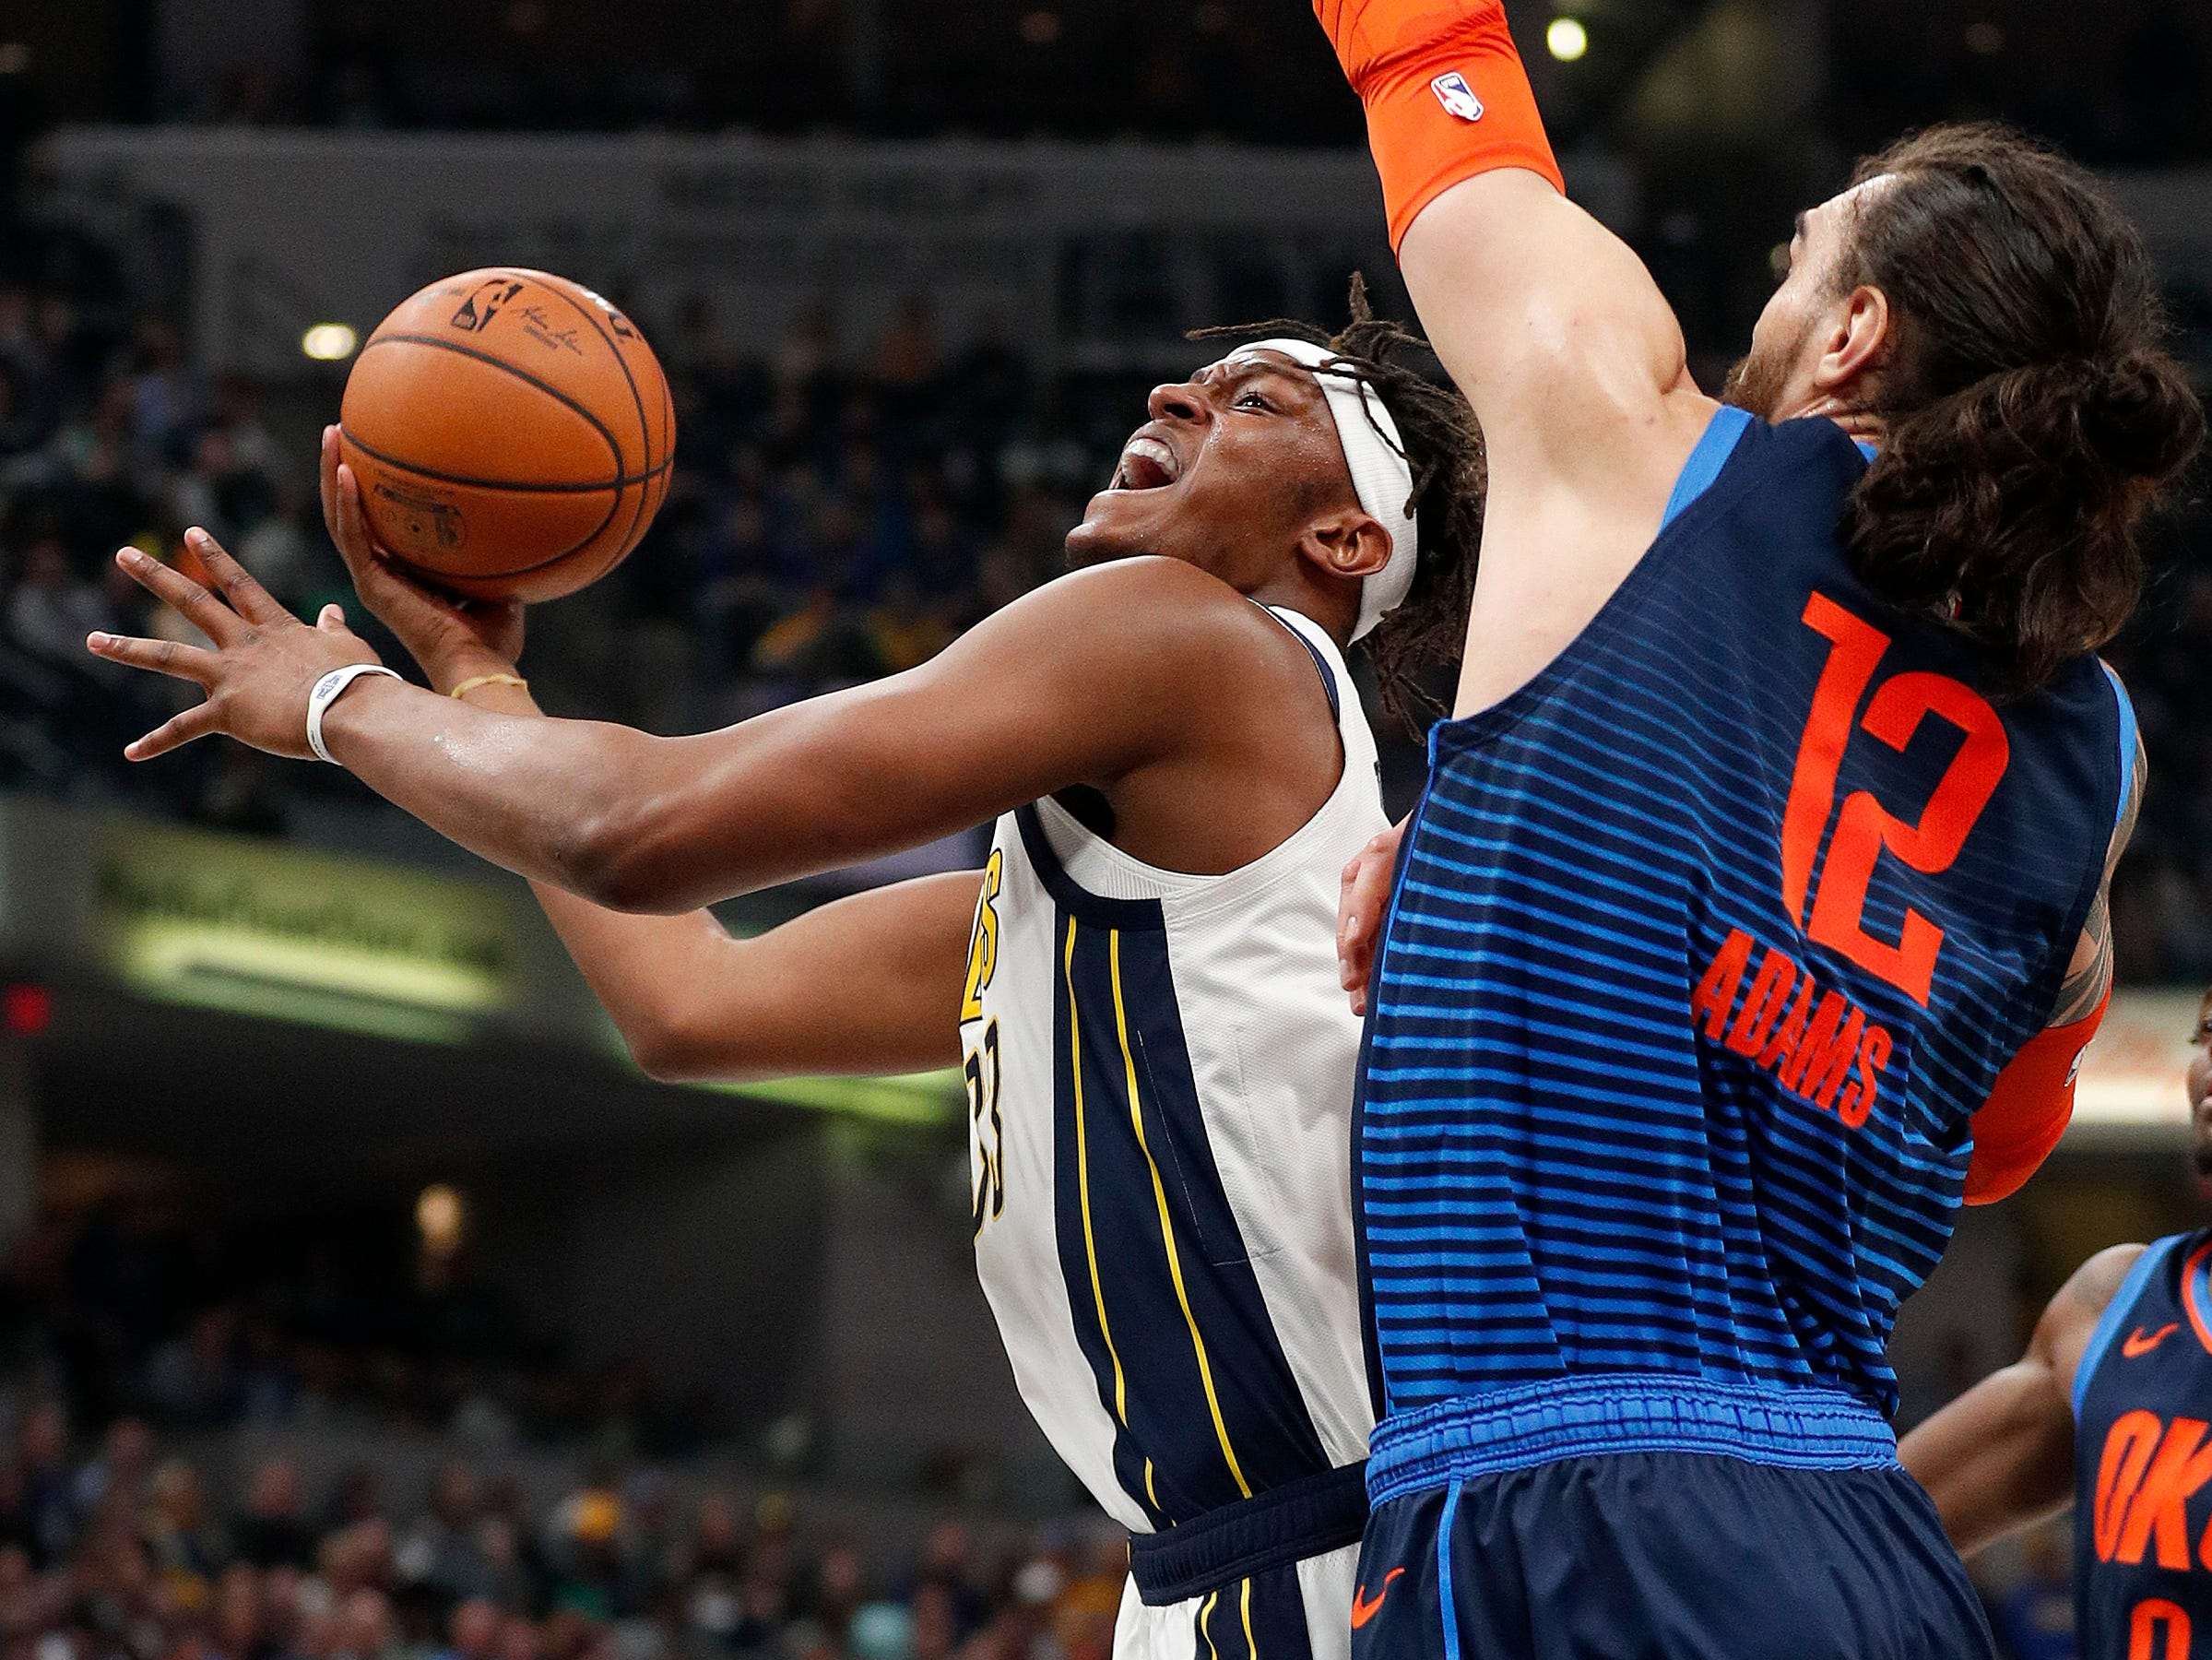 Indiana Pacers center Myles Turner (33) drives to the basket around Oklahoma City Thunder center Steven Adams (12) in the first half of their game at Bankers Life Fieldhouse on Thursday, Mar. 14, 2019.